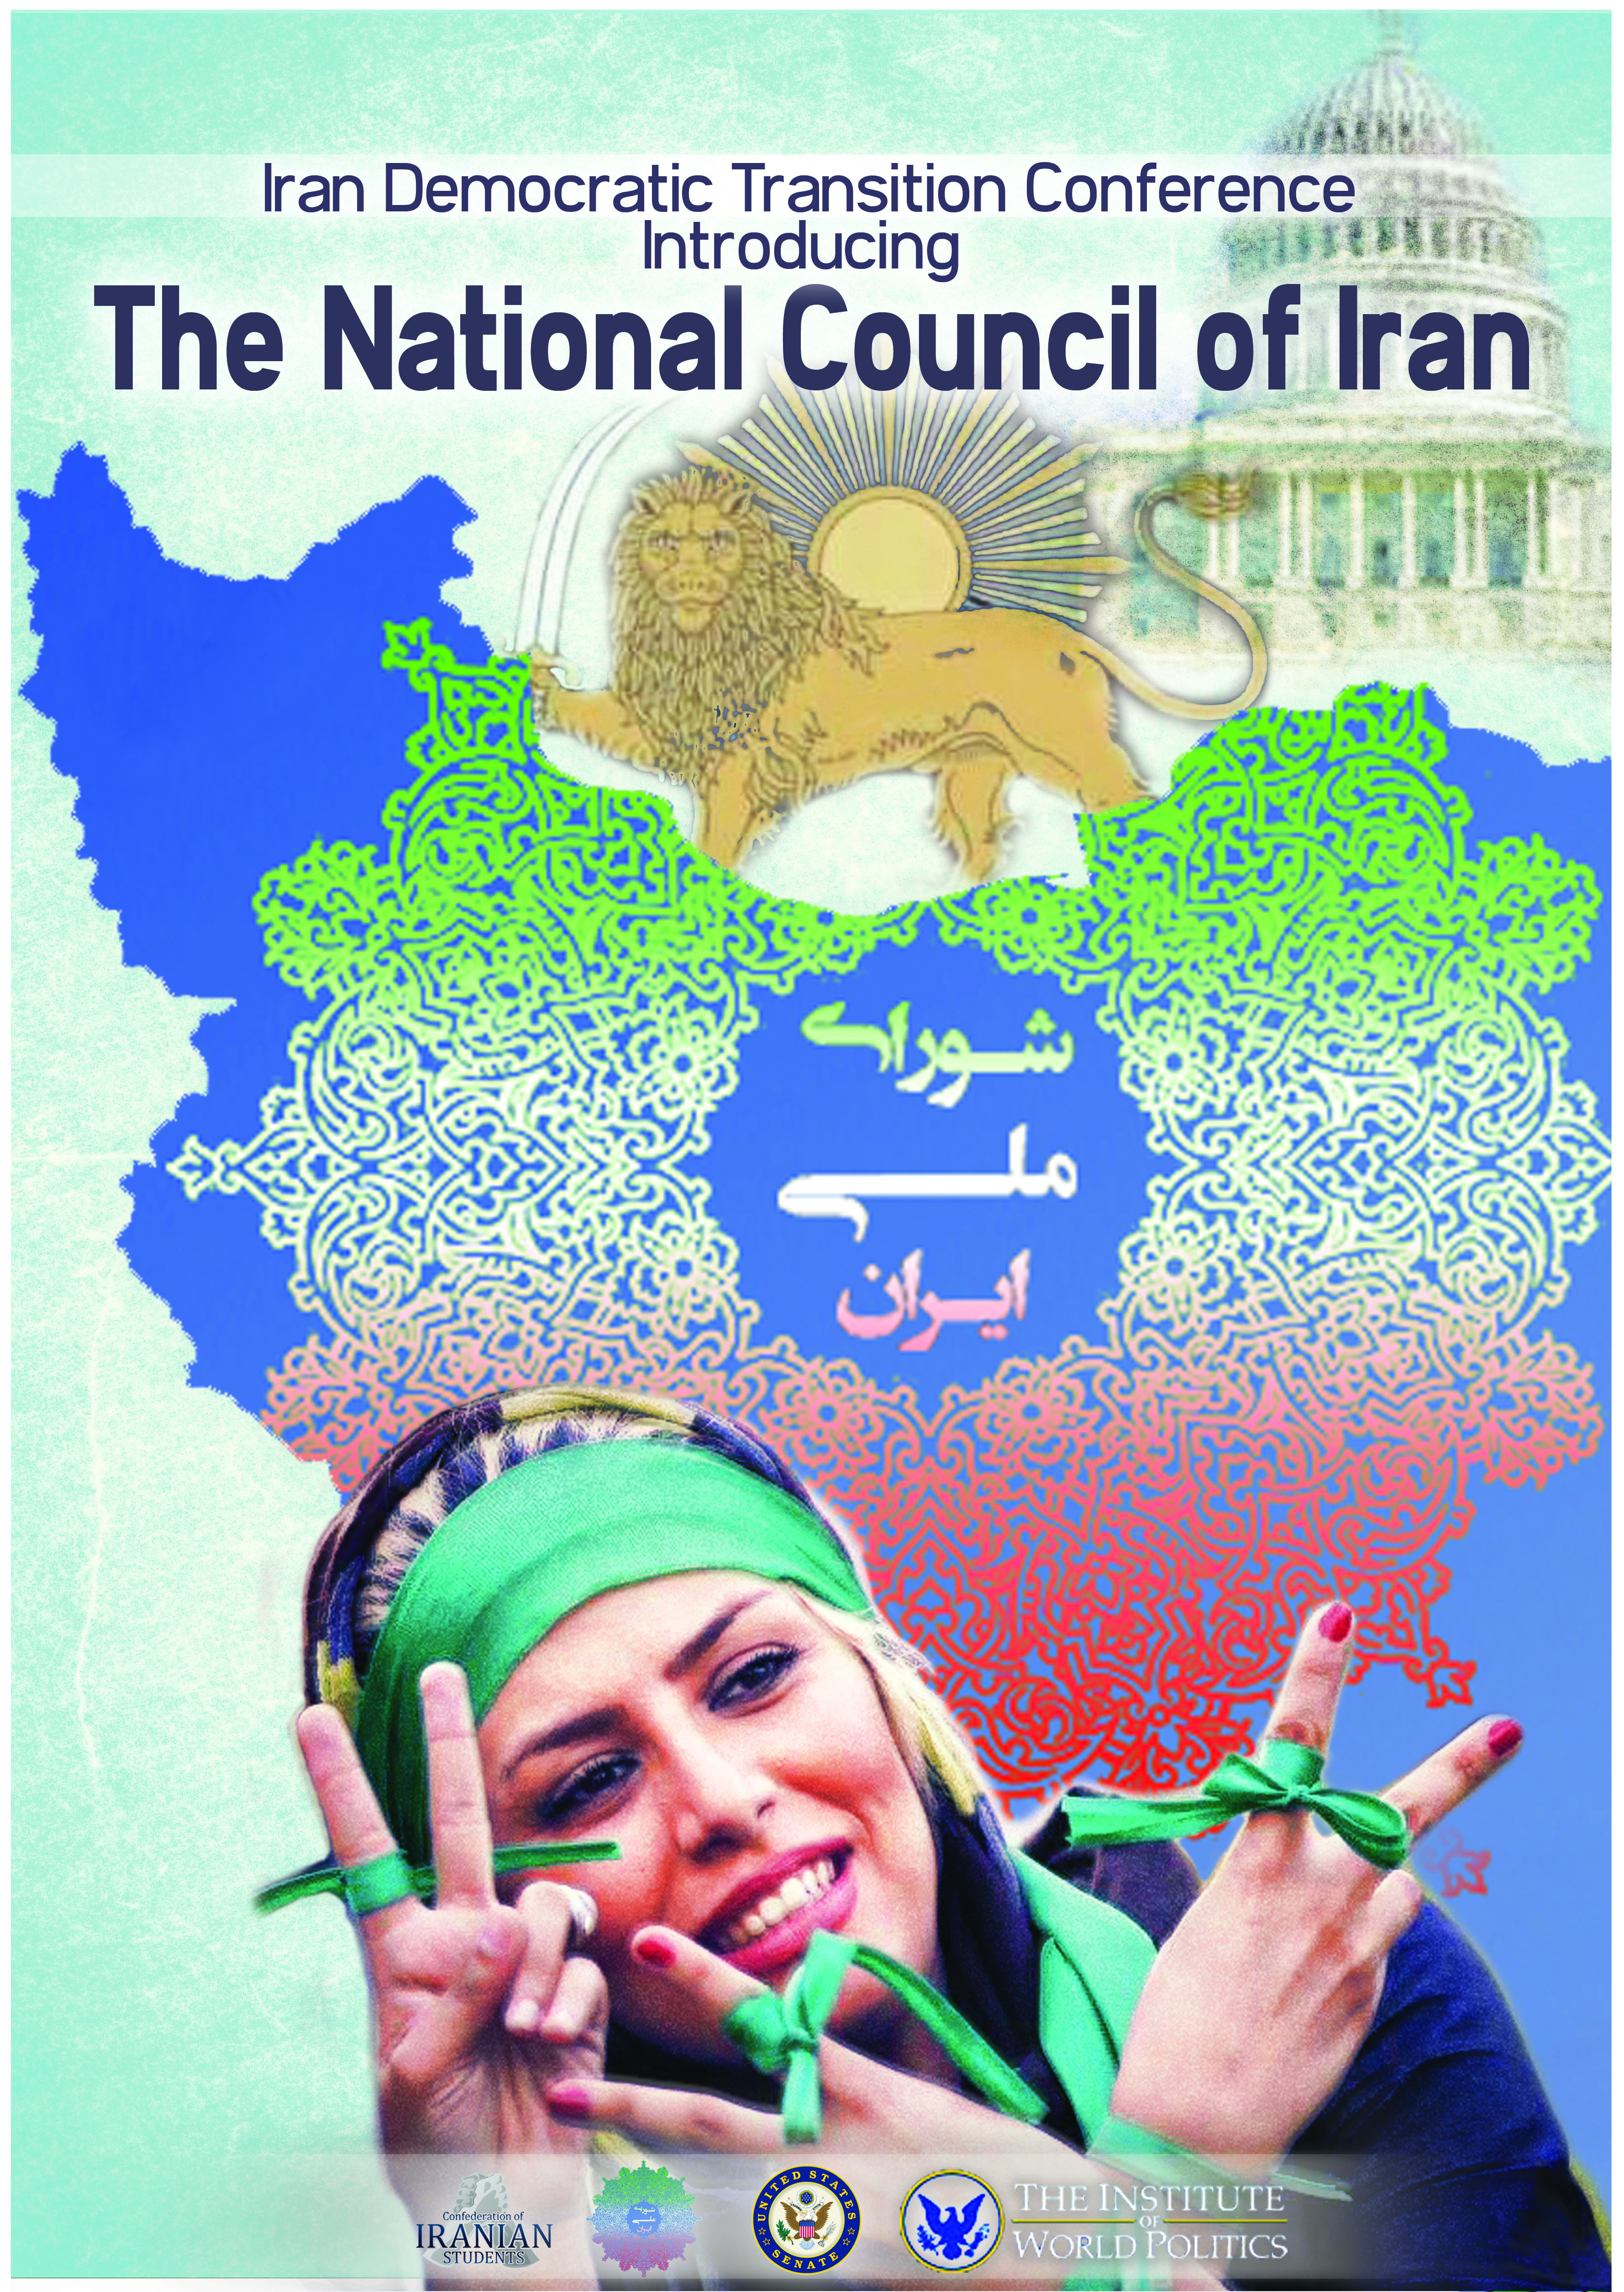 Democratic Transition in Iran, introducing The National Iran Council